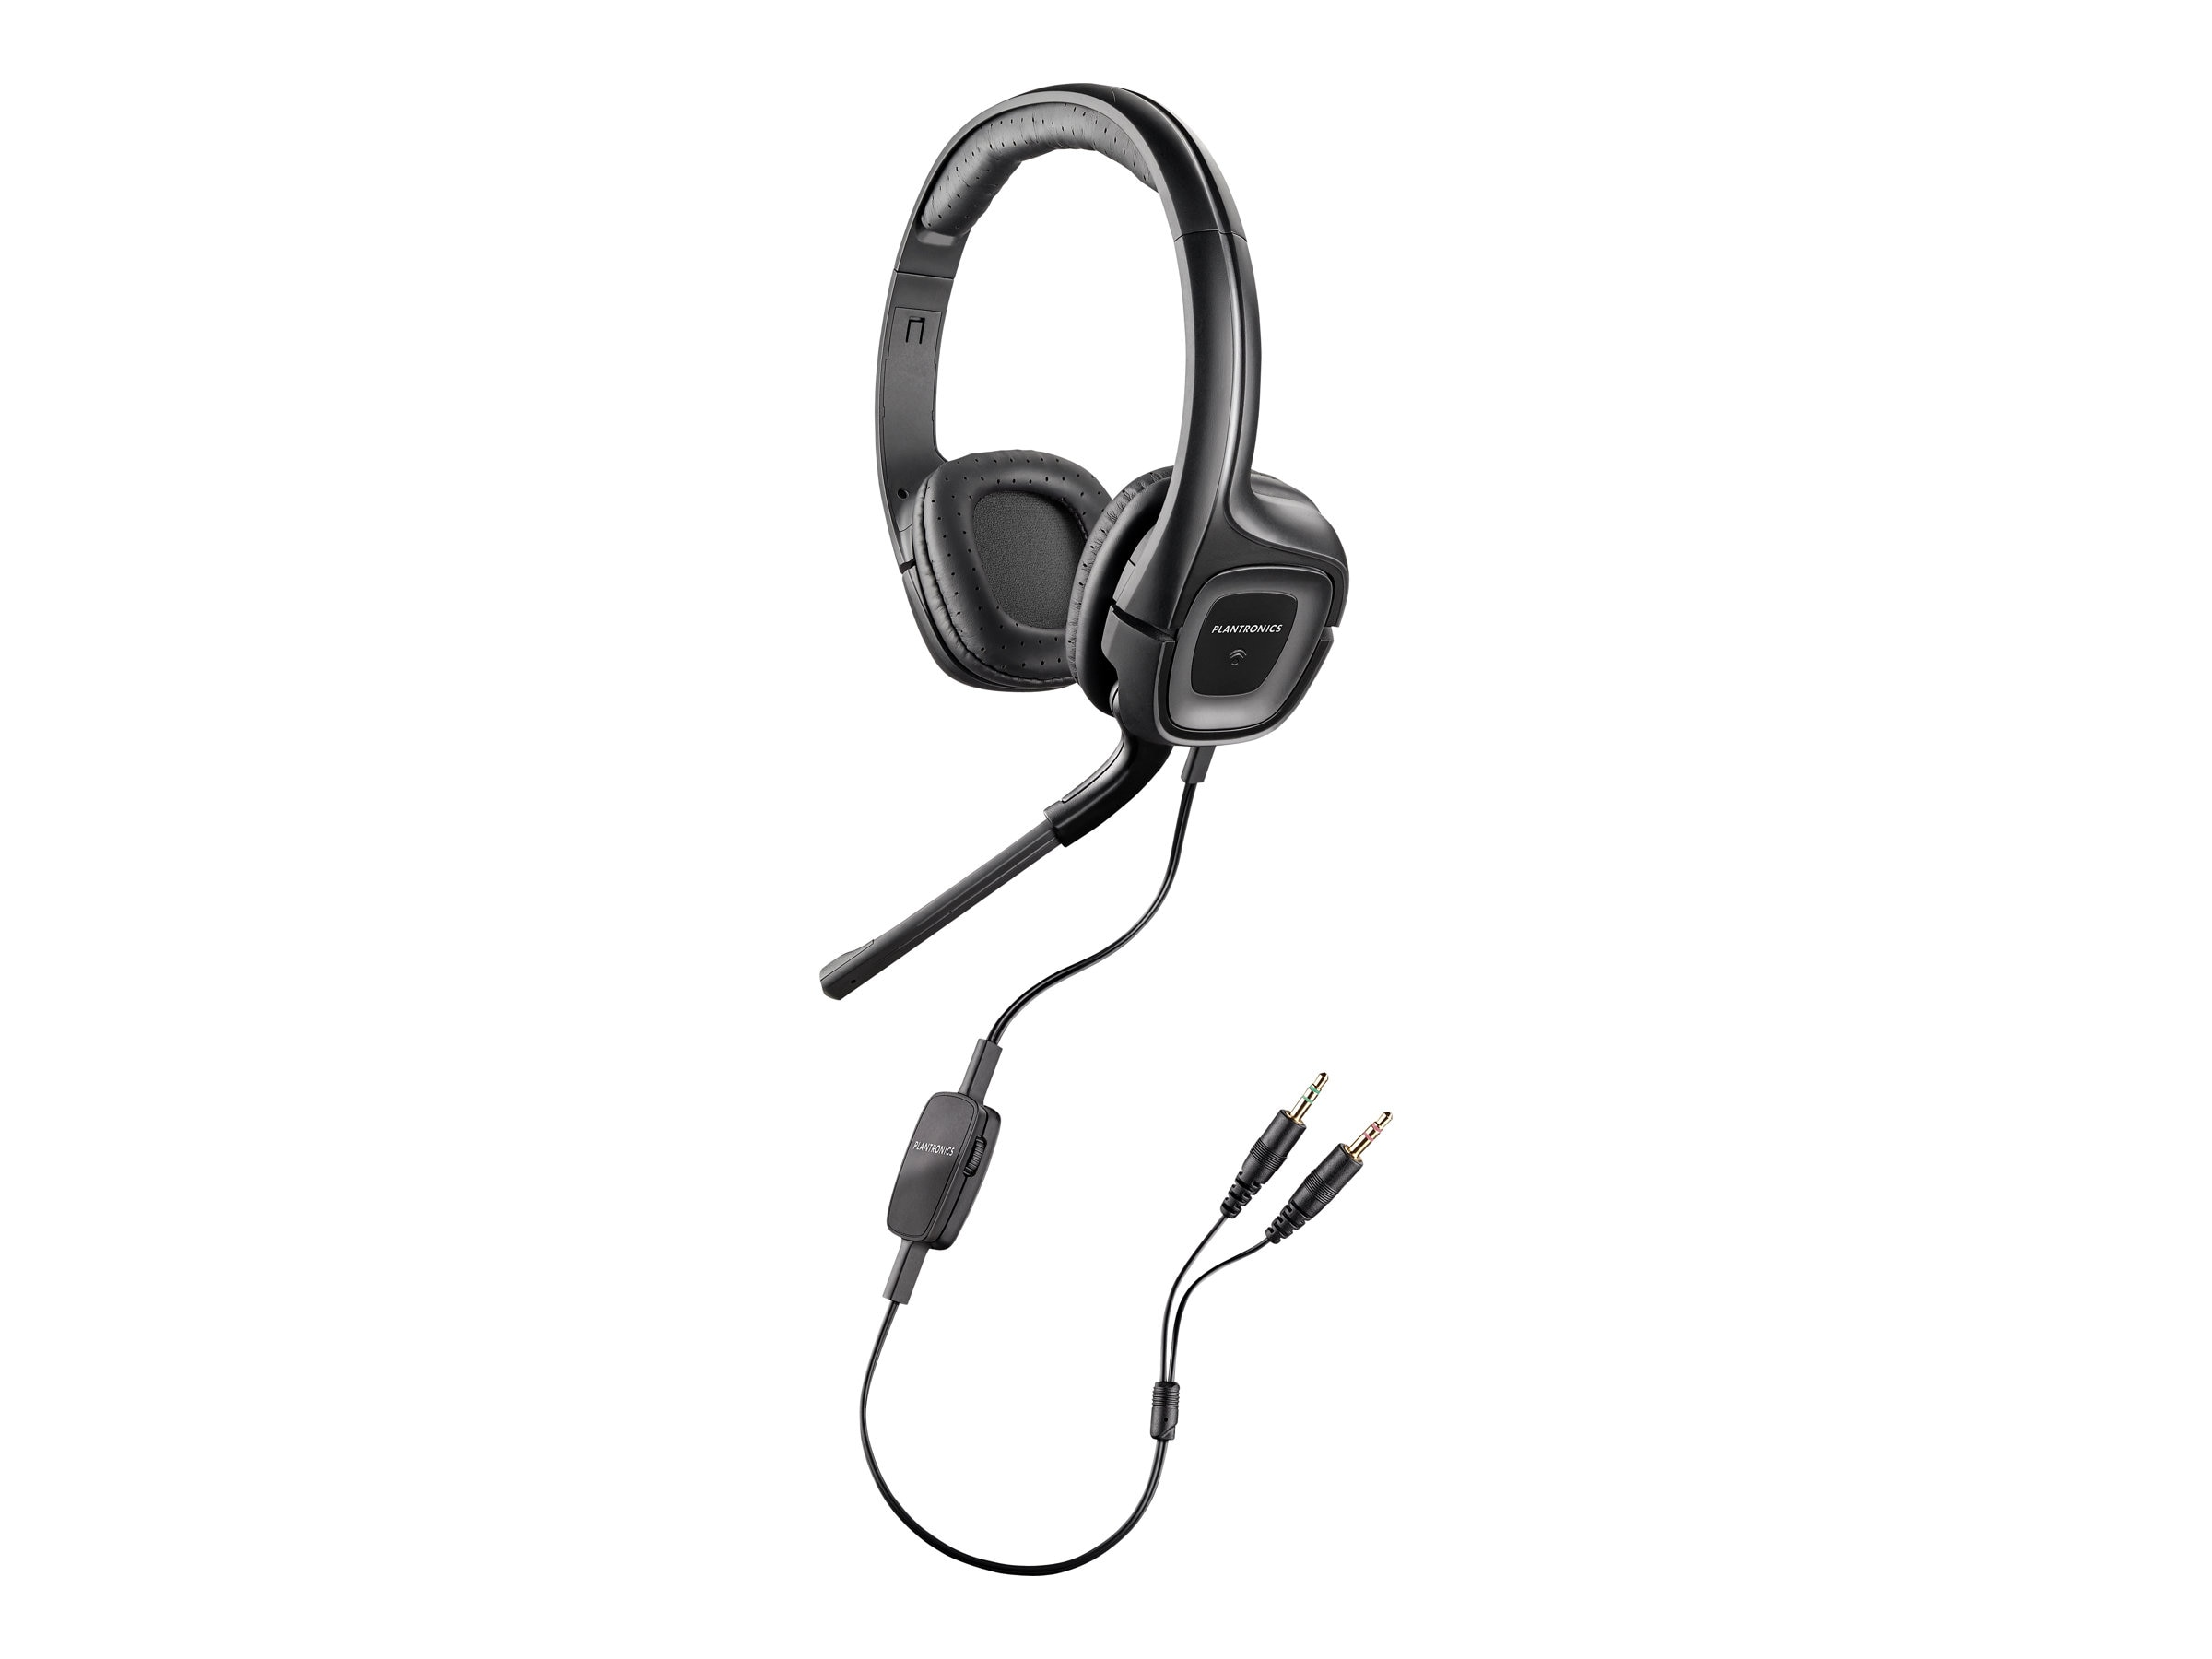 Plantronics Audio 355 with 3.5mm Adapter